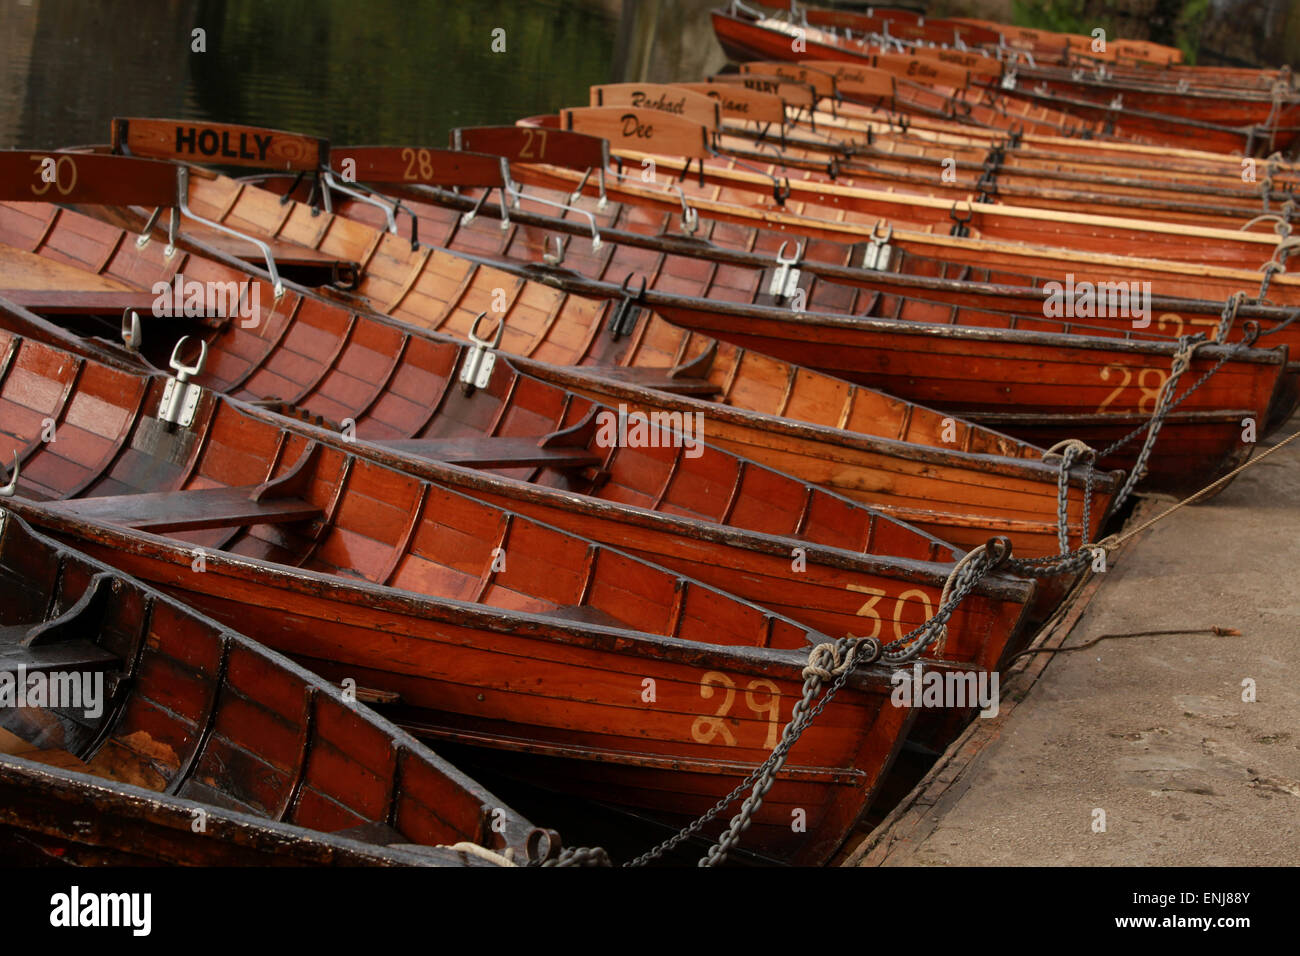 Classic wooden rowing boats on the River Wear by Elvet Bridge Durham UK - Stock Image